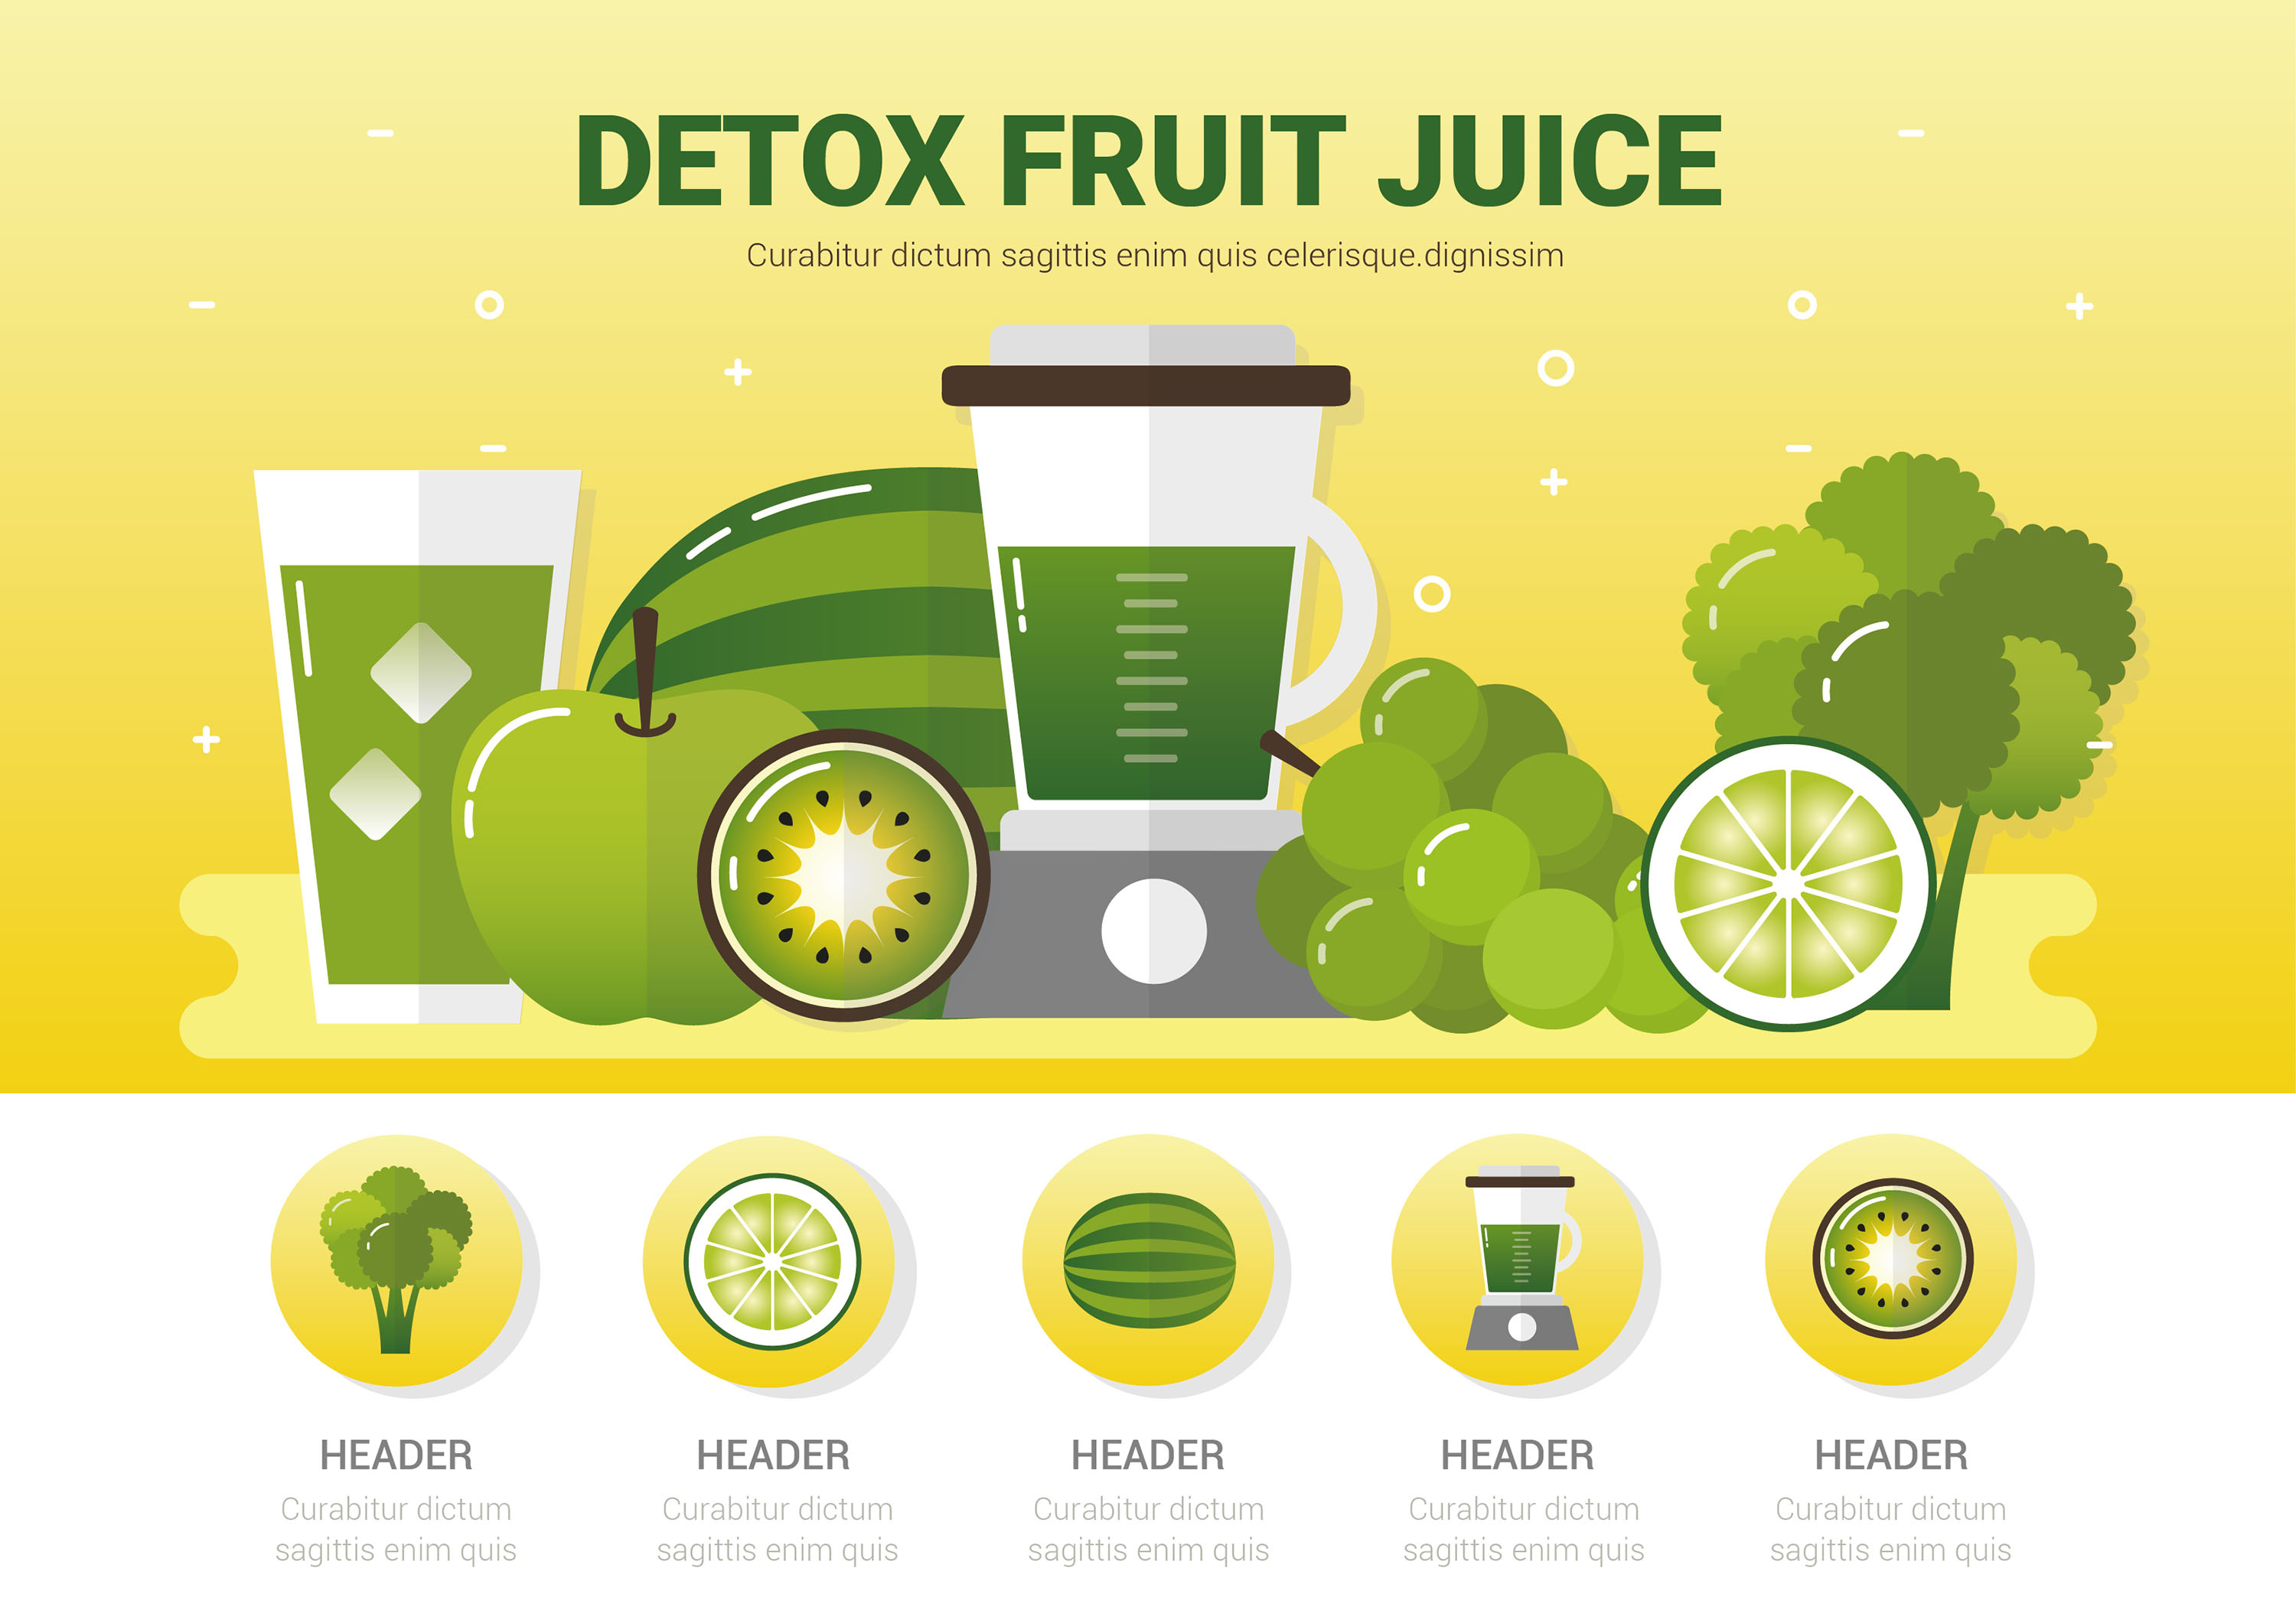 detox fruits vector background download free vector art stock graphics images. Black Bedroom Furniture Sets. Home Design Ideas